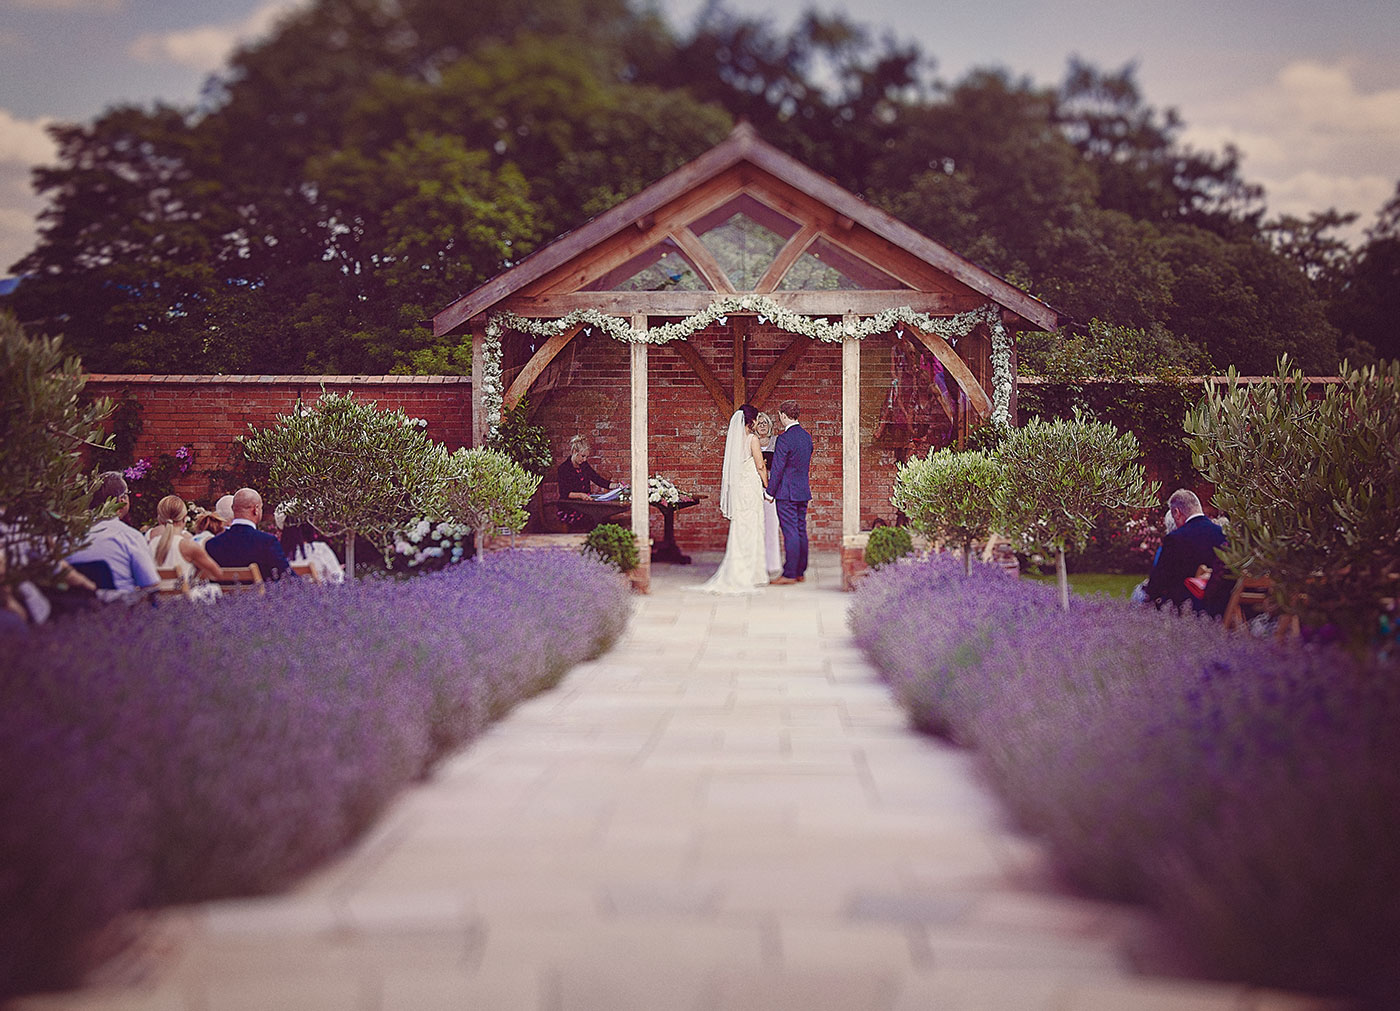 Upton Barn & Walled Garden Wedding Venue